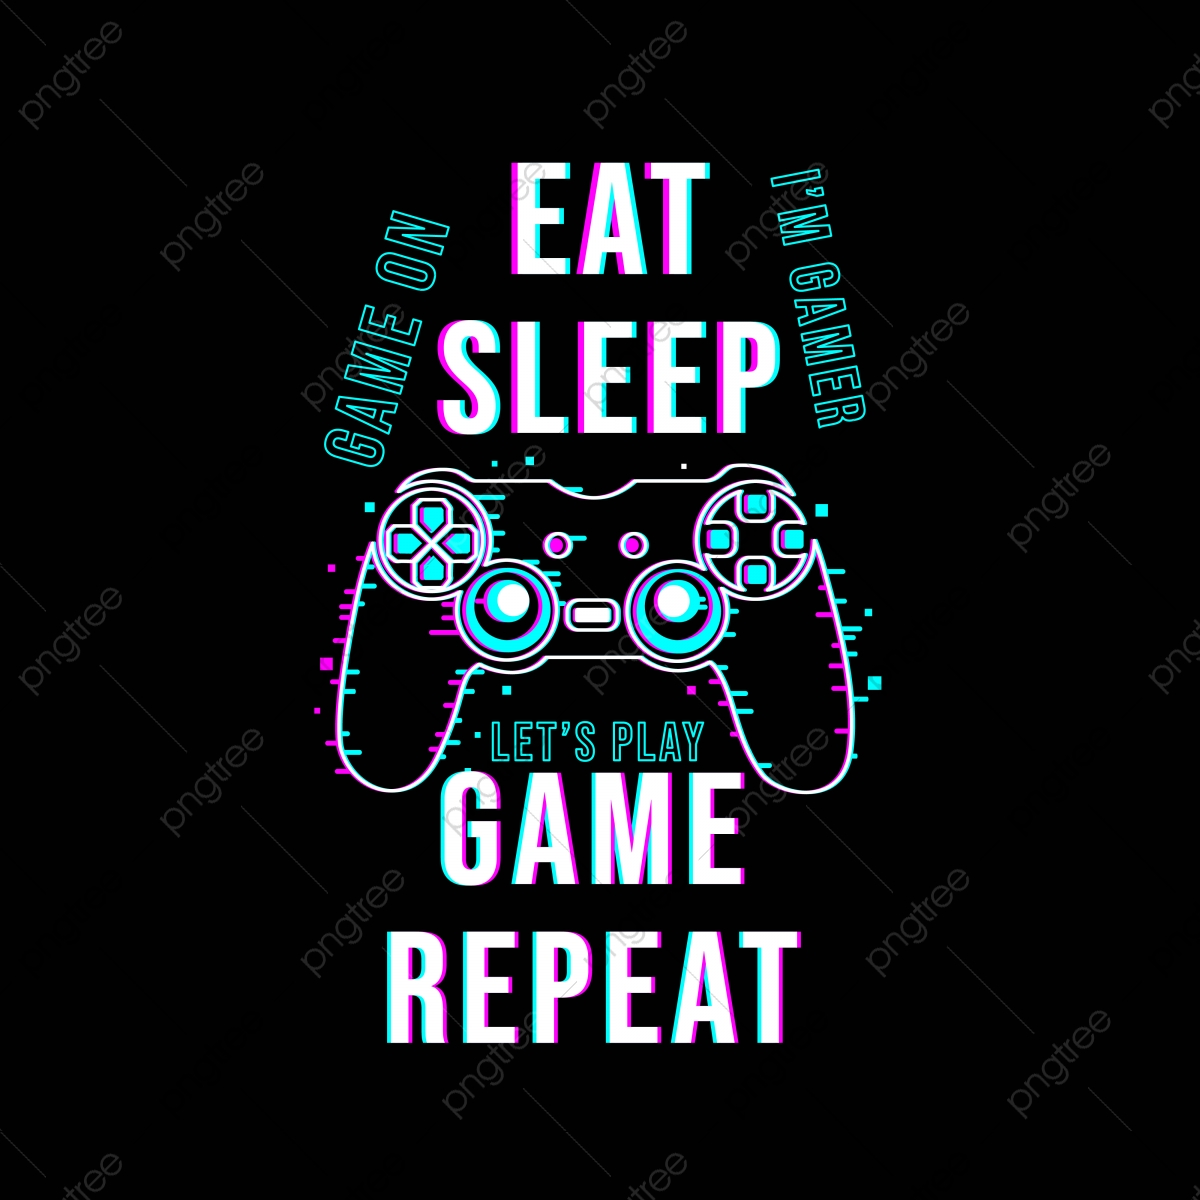 pngtree eat sleep game repeat t shirt design png image 5337996